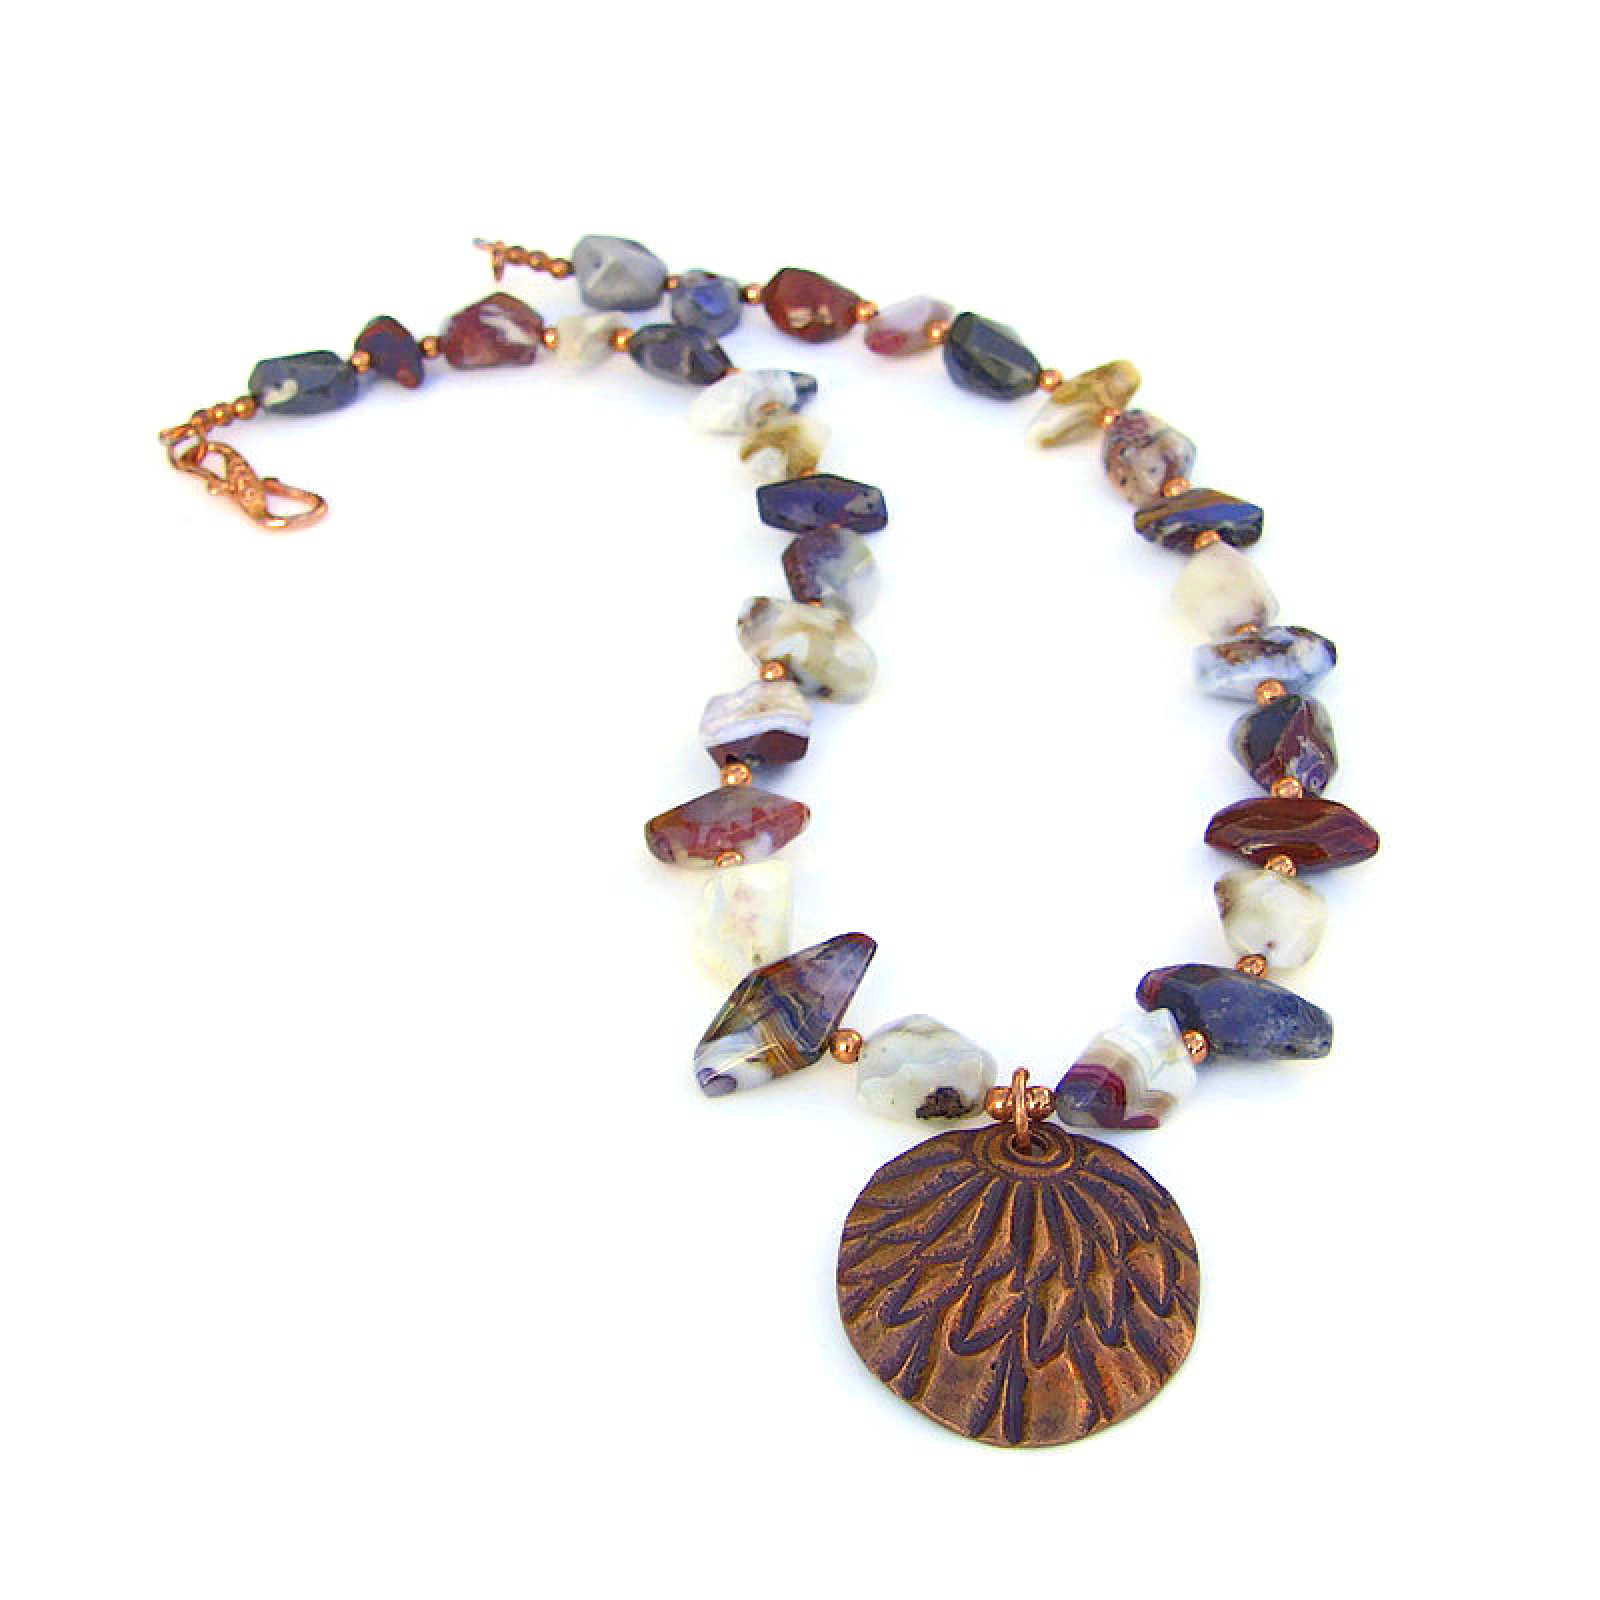 Copper Feather Pendant Mixed Agate Necklace Earthy Handmade